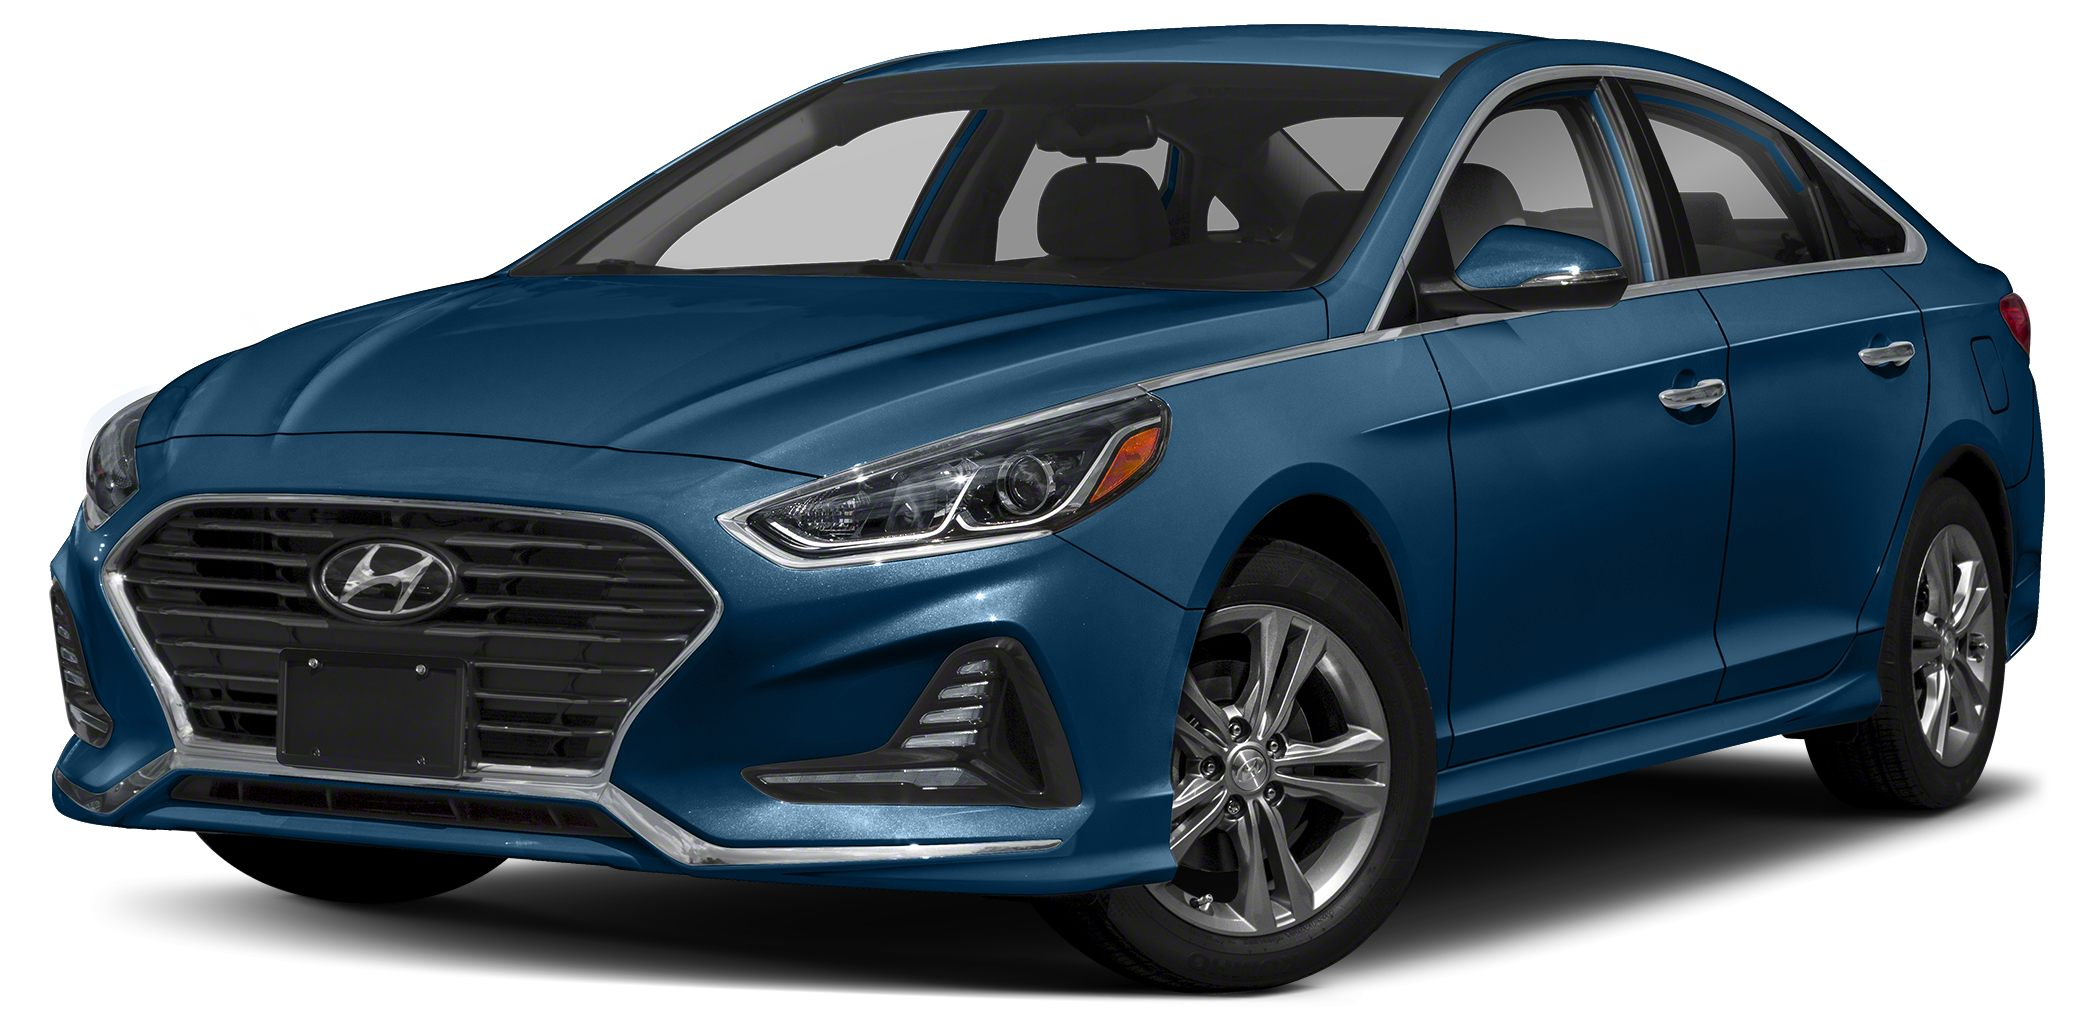 2018 Hyundai Sonata SE Price includes 1000 - Uber Driver Coupon Exp 11302017 500 - Valued